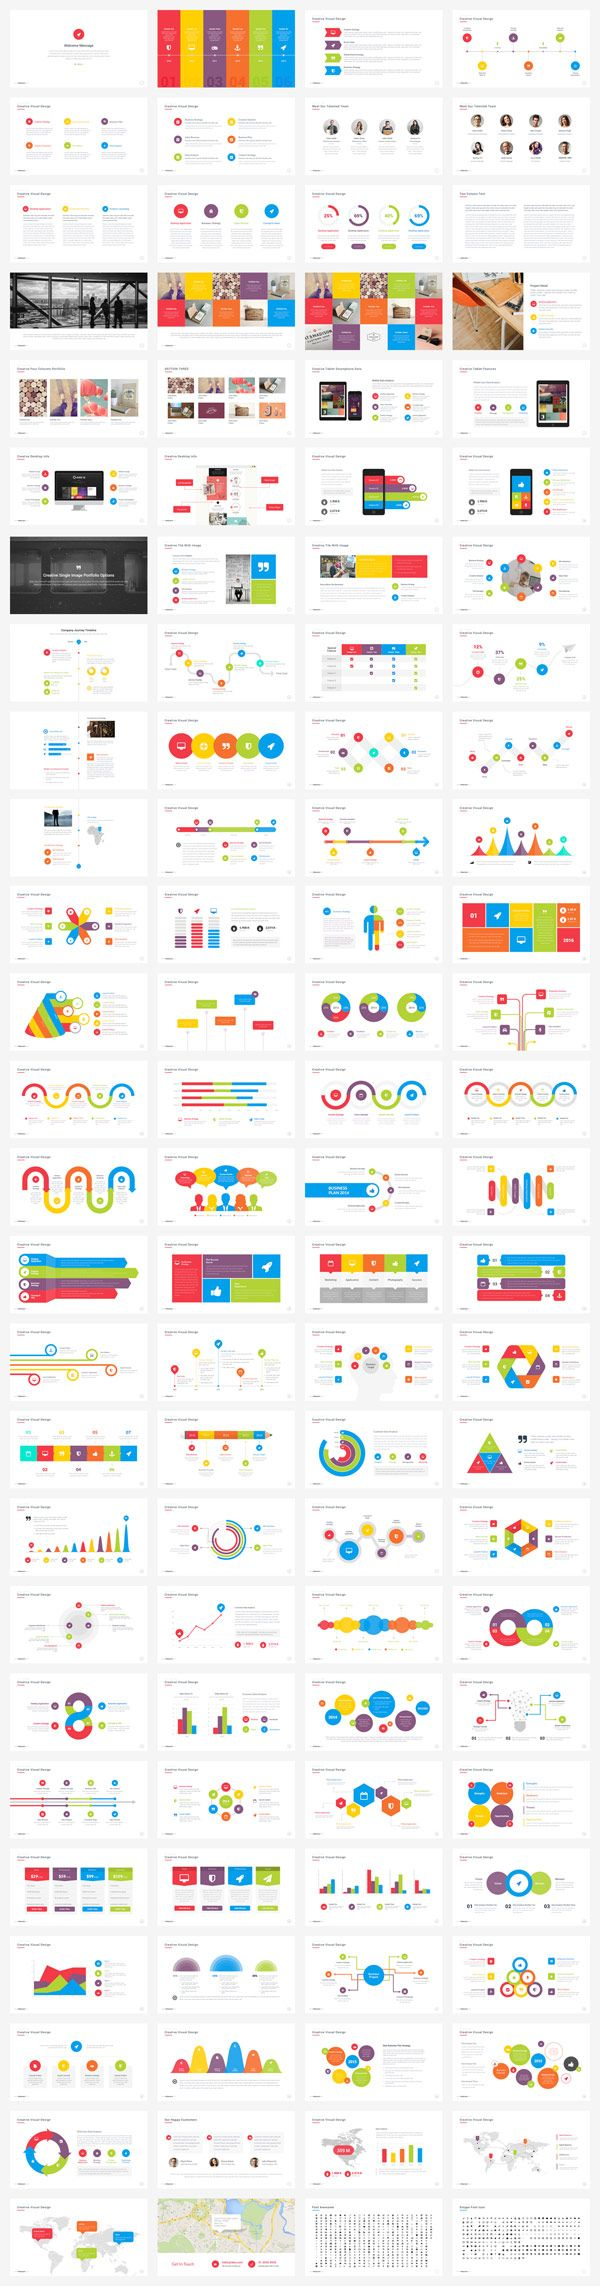 Look at all the pre designed slides with colorful infographics, charts, and much…